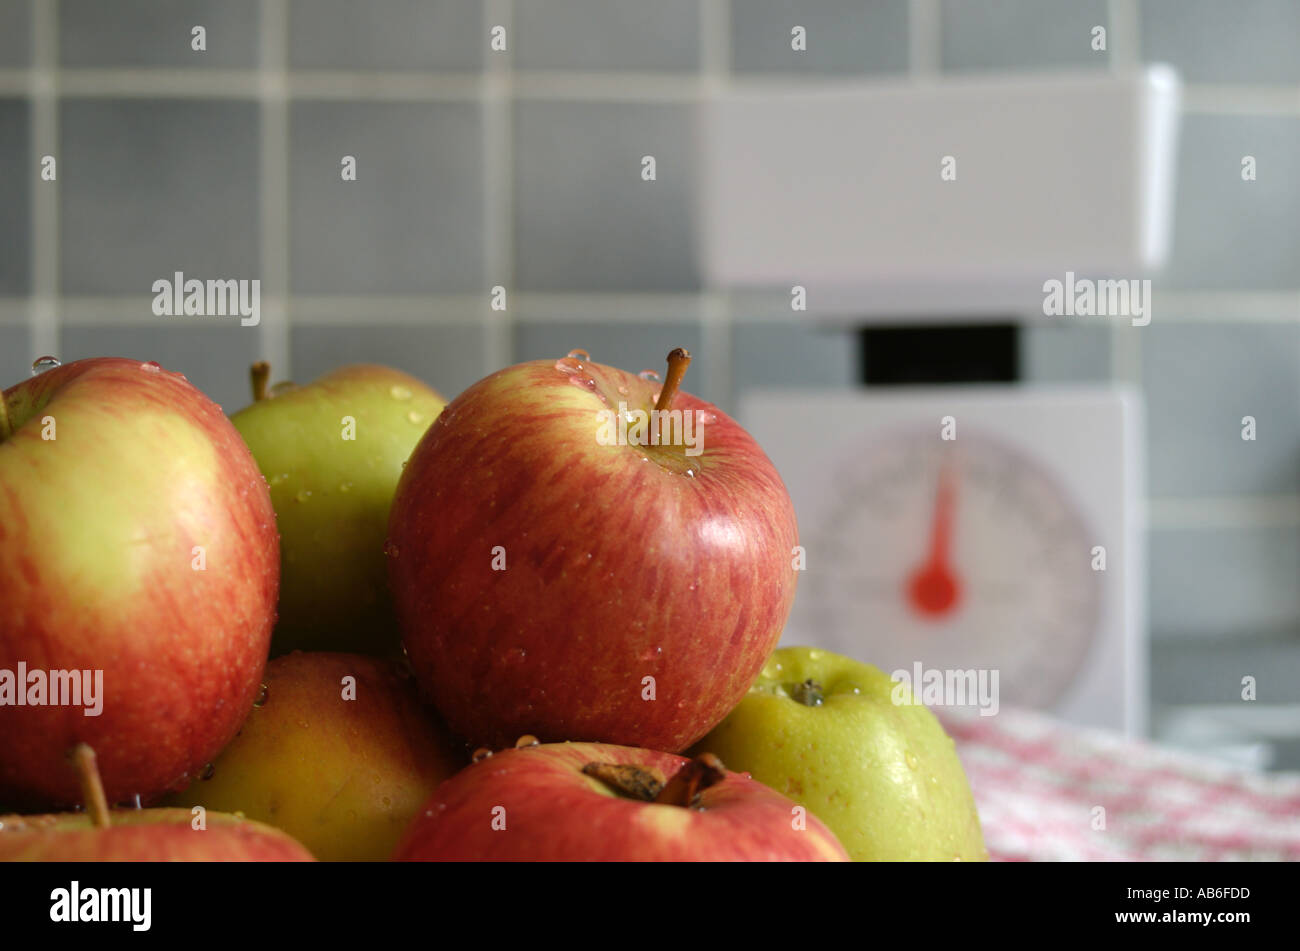 A PILE OF APPLES WITH A SET OF KITCHEN SCALES IN BACKGROUND - Stock Image